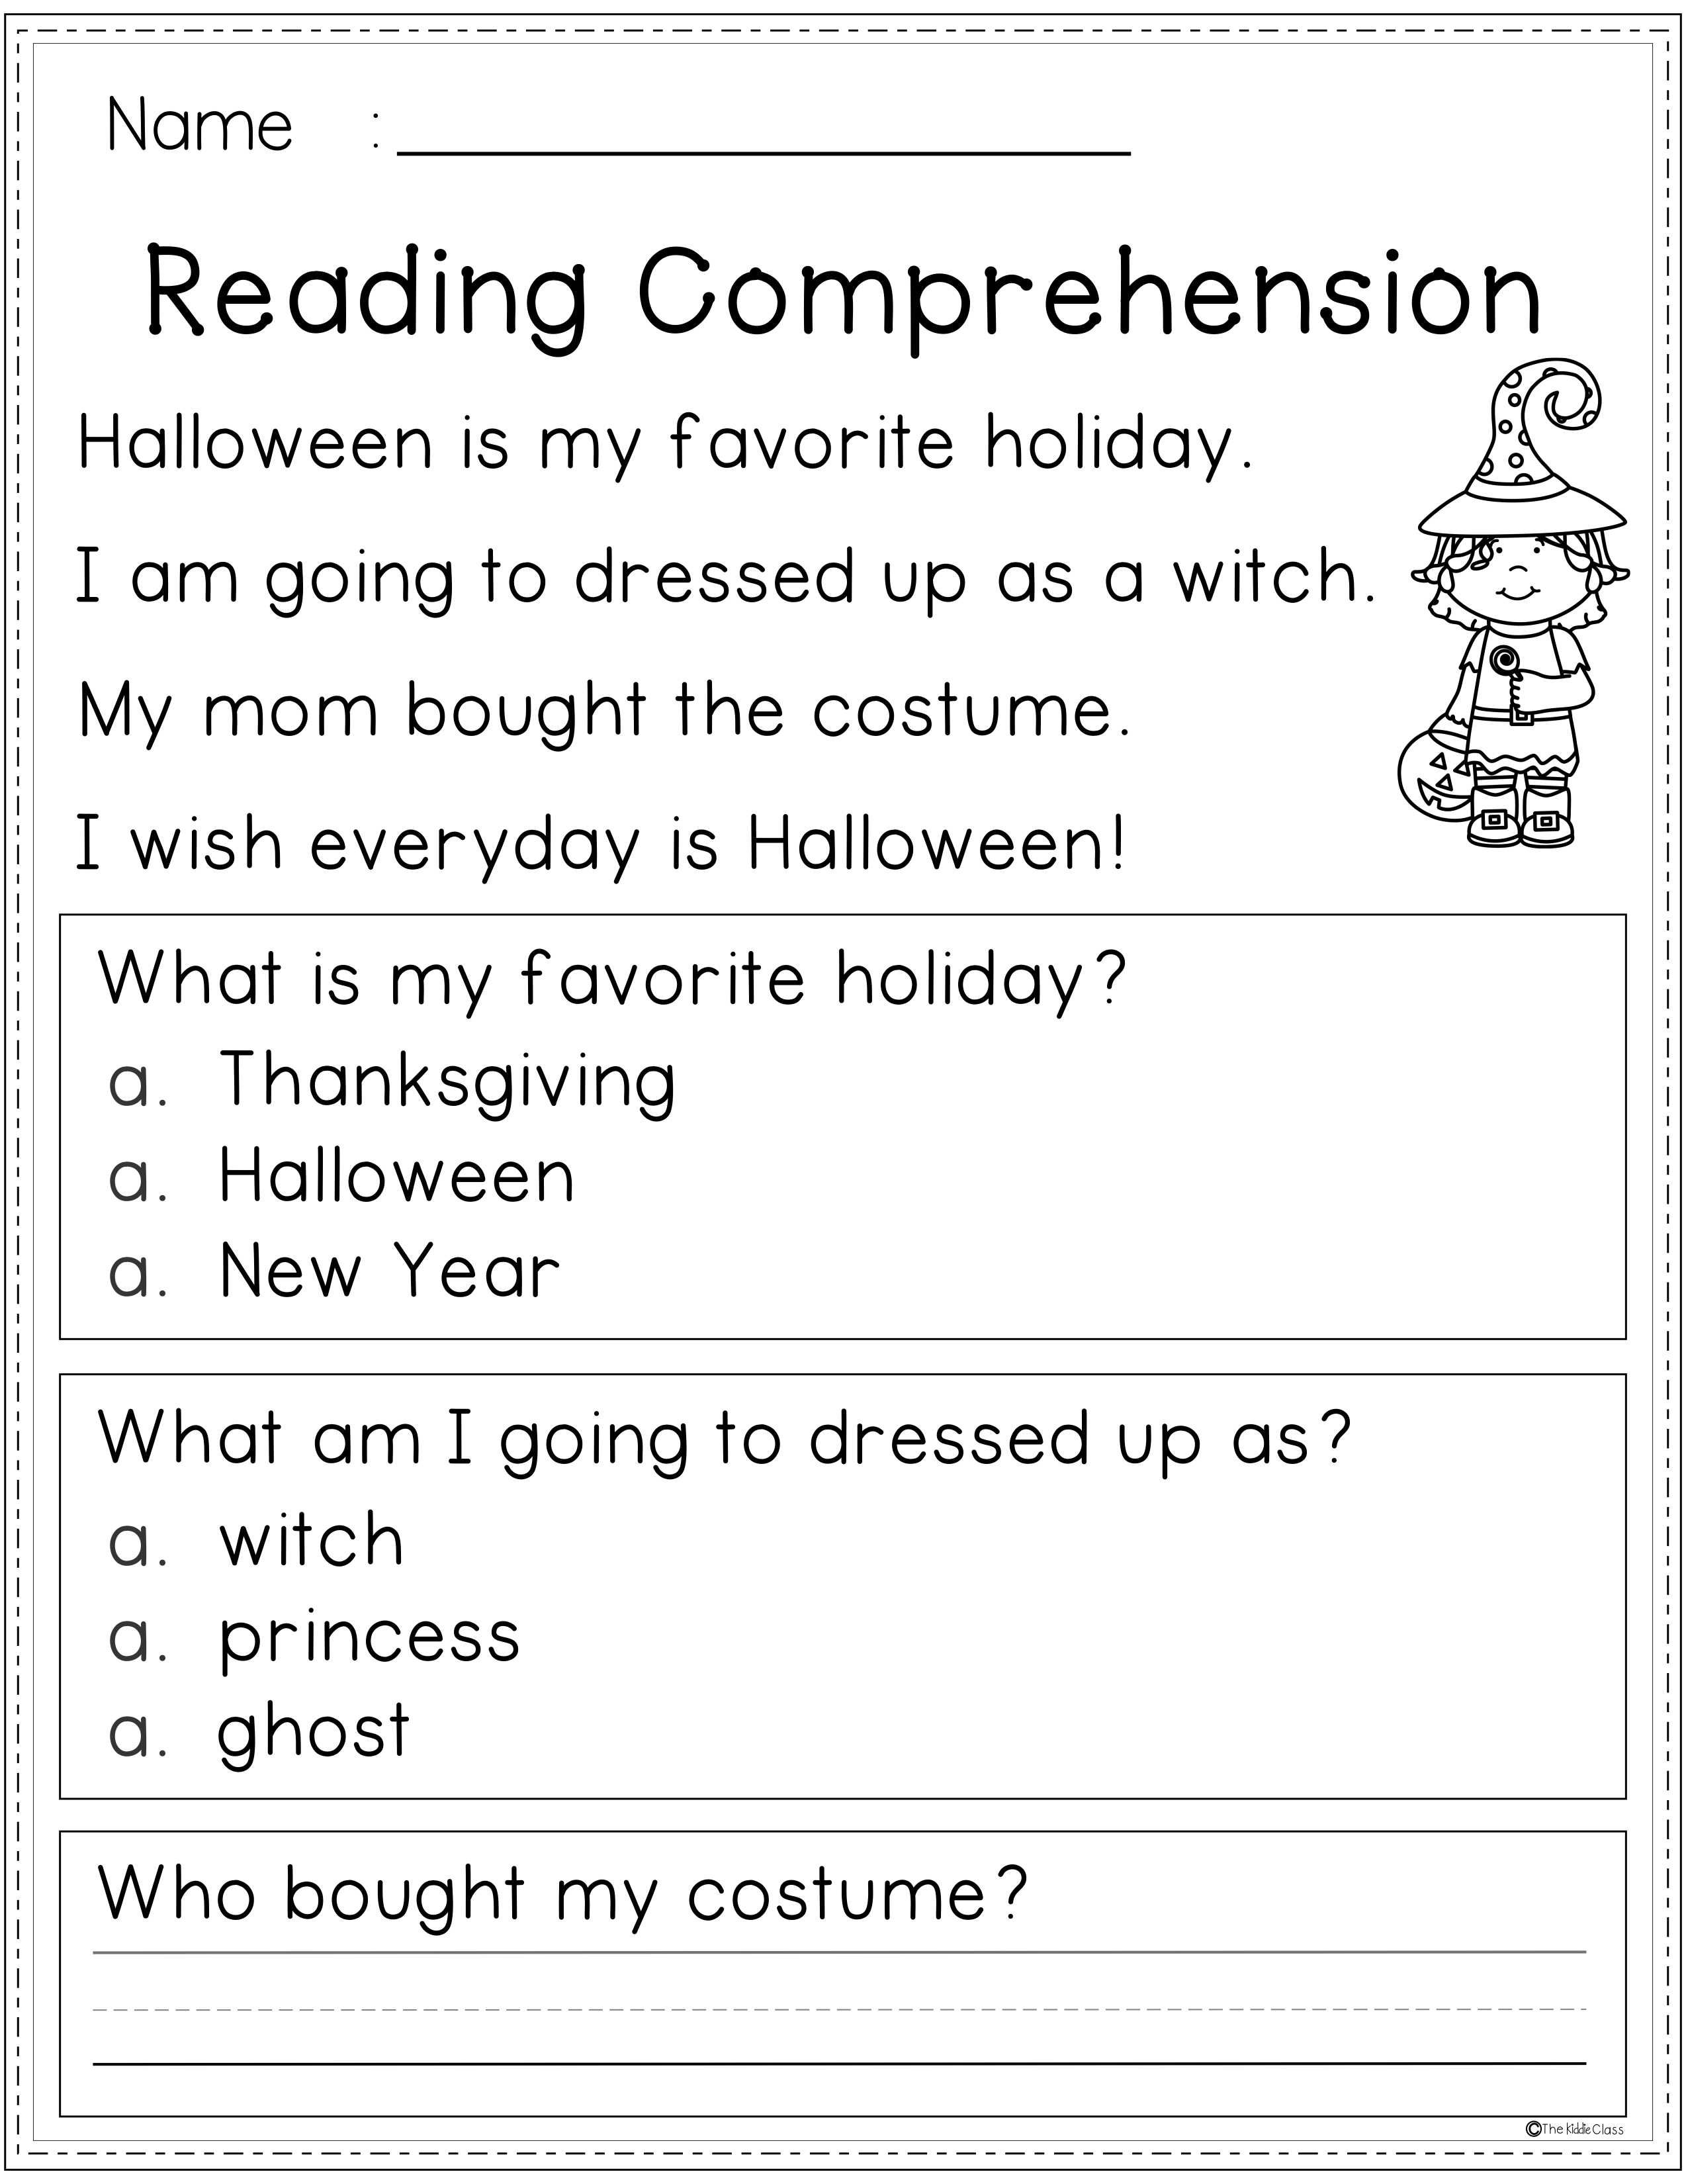 Reading Comprehension Fall Edition Contains 25 Pages Of Reading Comprehe Reading Comprehension Reading Comprehension Worksheets Halloween Reading Comprehension [ 3300 x 2551 Pixel ]